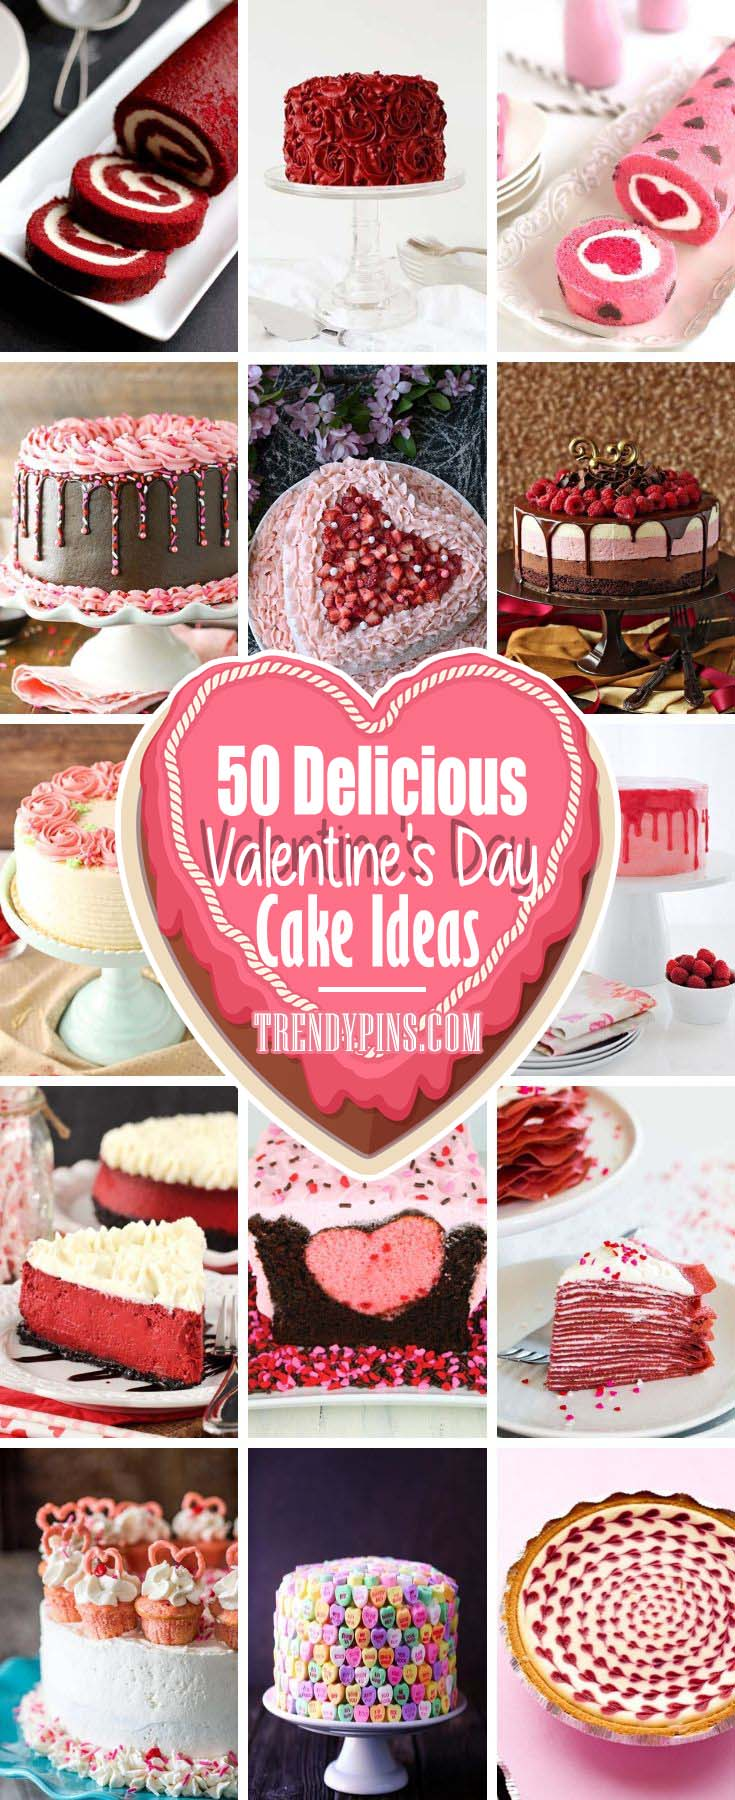 50 Delicious Valentines Day Cake Ideas #Valentin's Day #recipes #cakes #trendypins